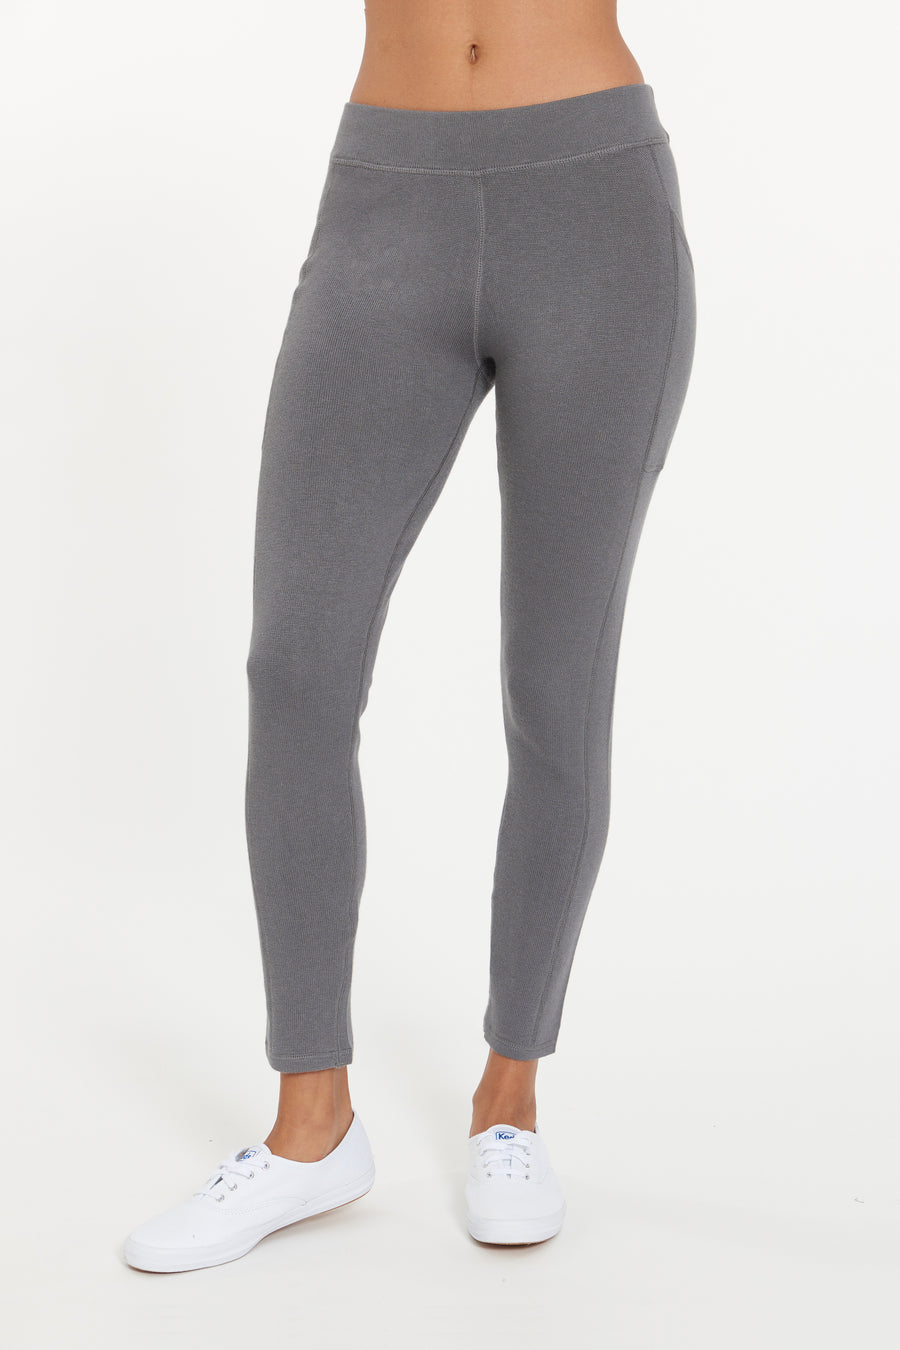 Vista Legging